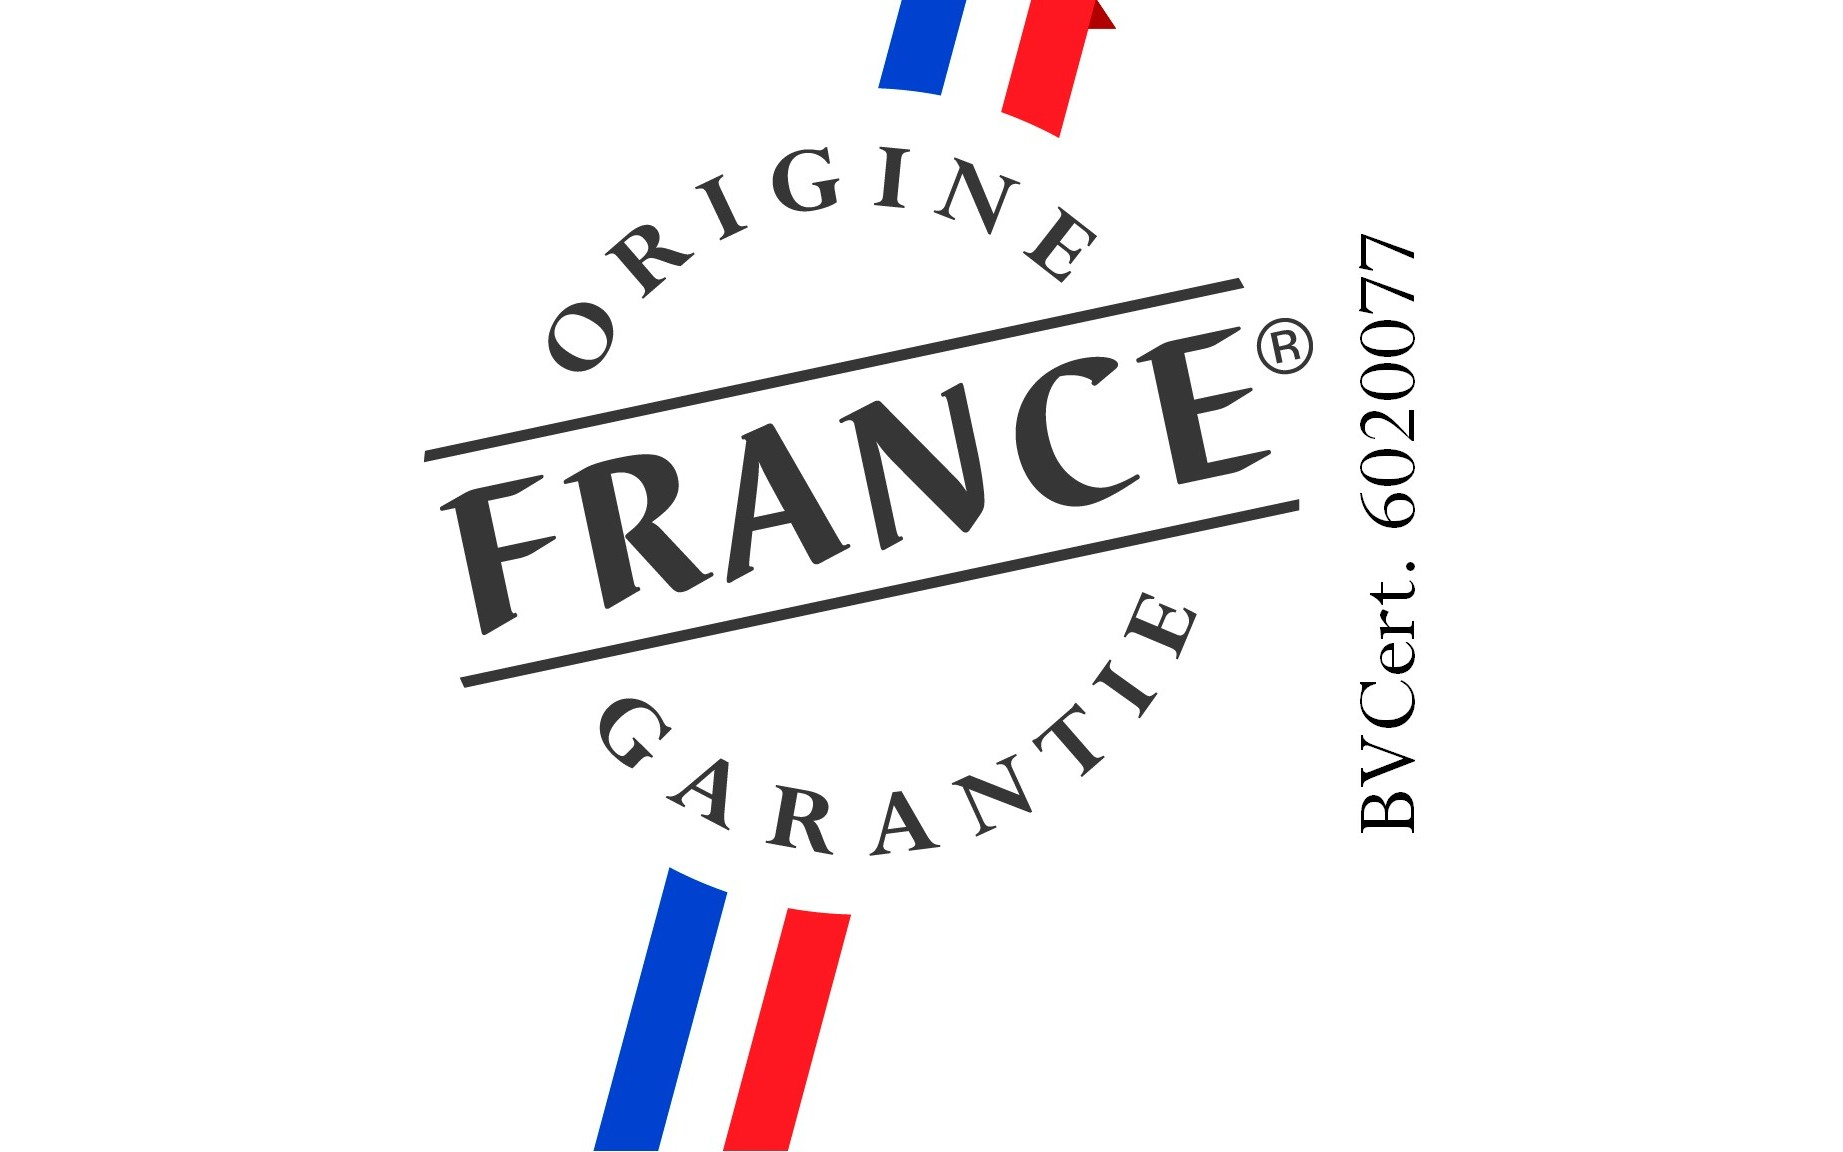 Le label Origine France Garantie